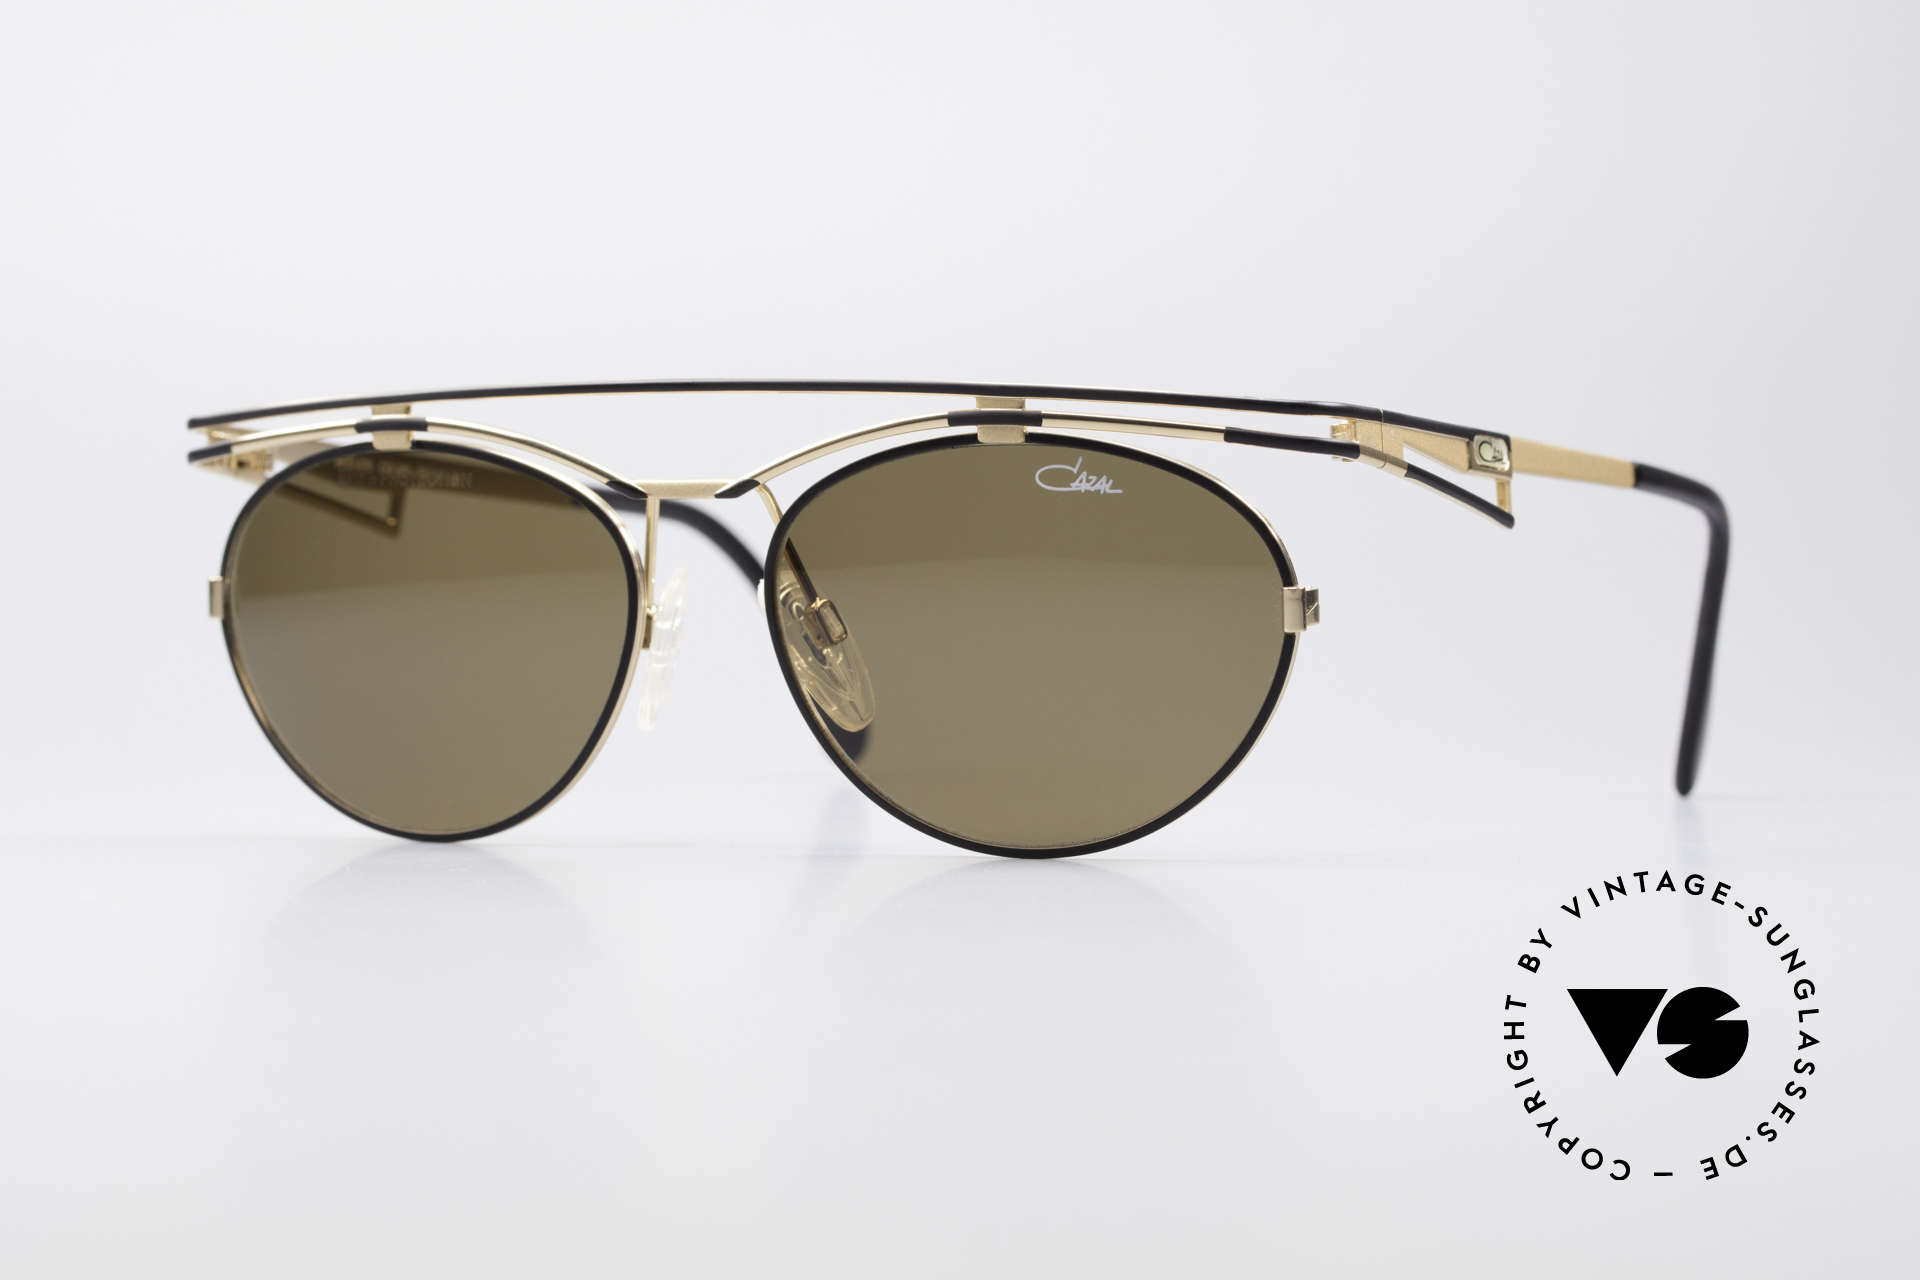 Cazal 970 Extraordinary 90's Shades, trendy cult designer sunglasses by CAZAL from 1997, Made for Women